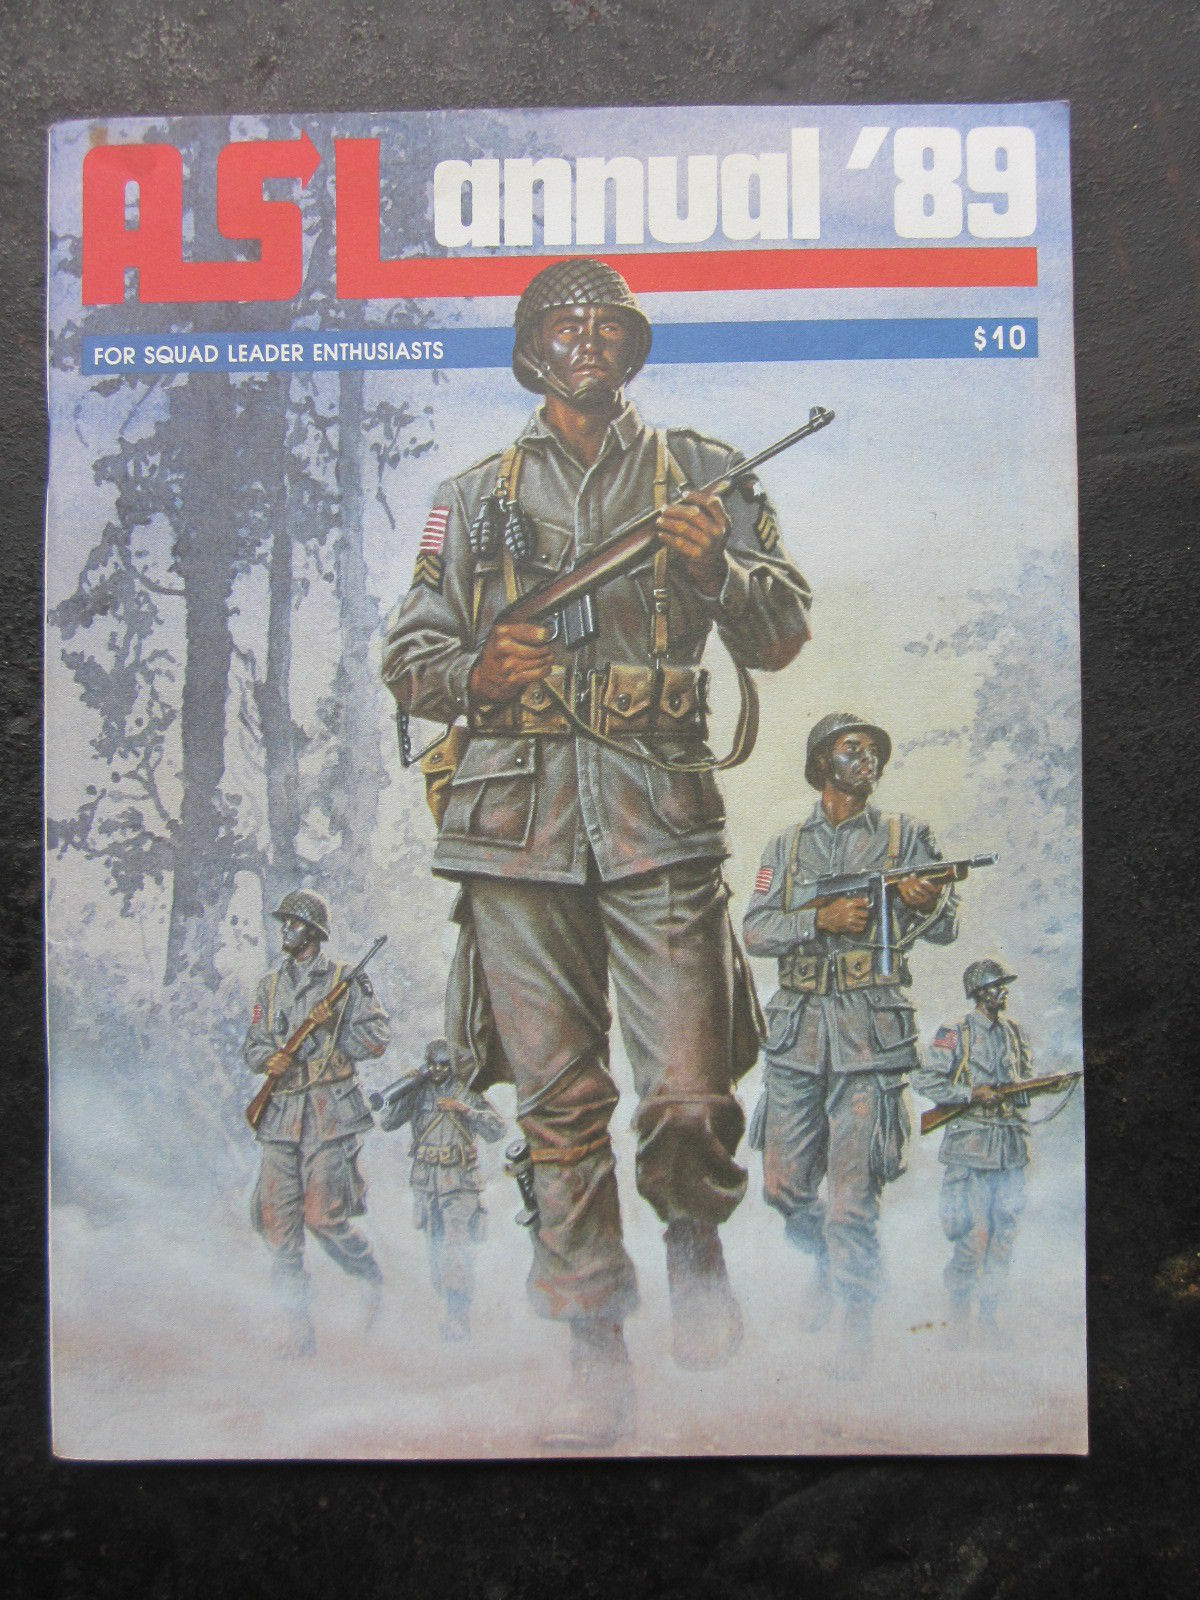 ASL ANNUAL '89 - FOR SQUAD LEADER ENTHUSIASTS - MINT SLIGHT SHELF WEAR - H